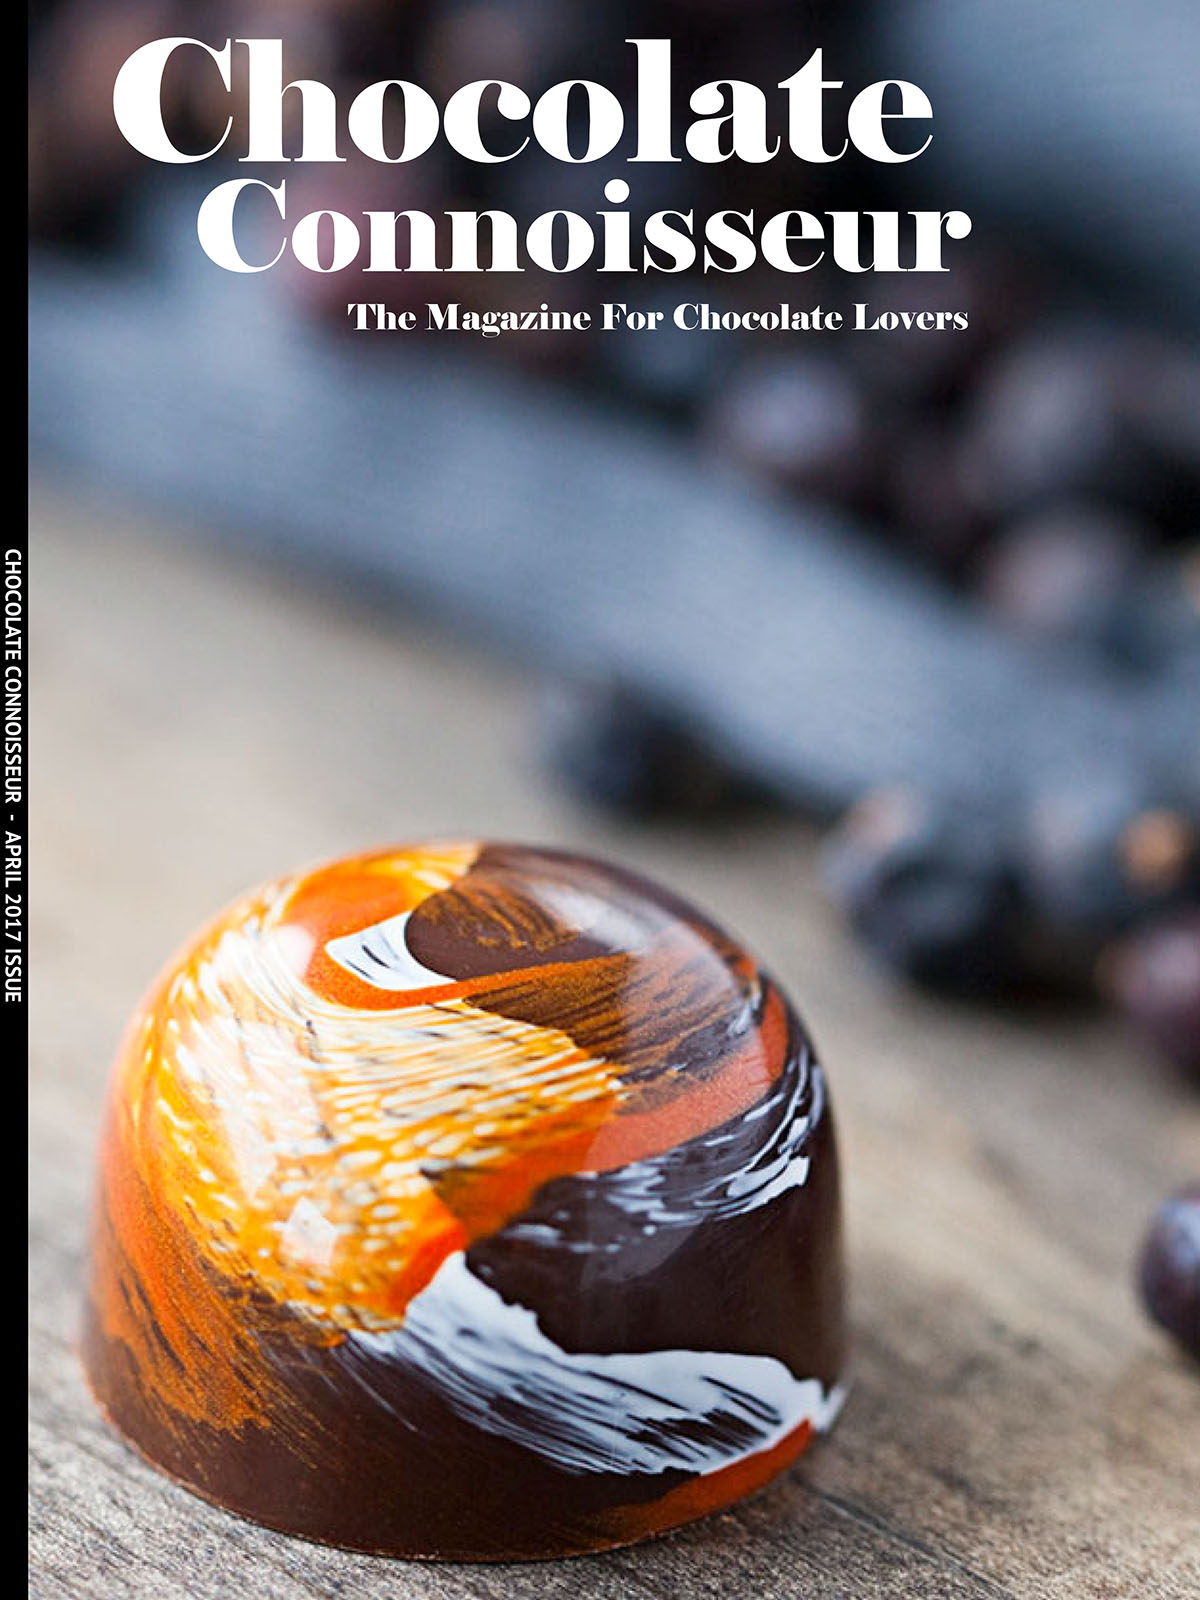 Chocolate Connoisseur April 2017 Issue Cover